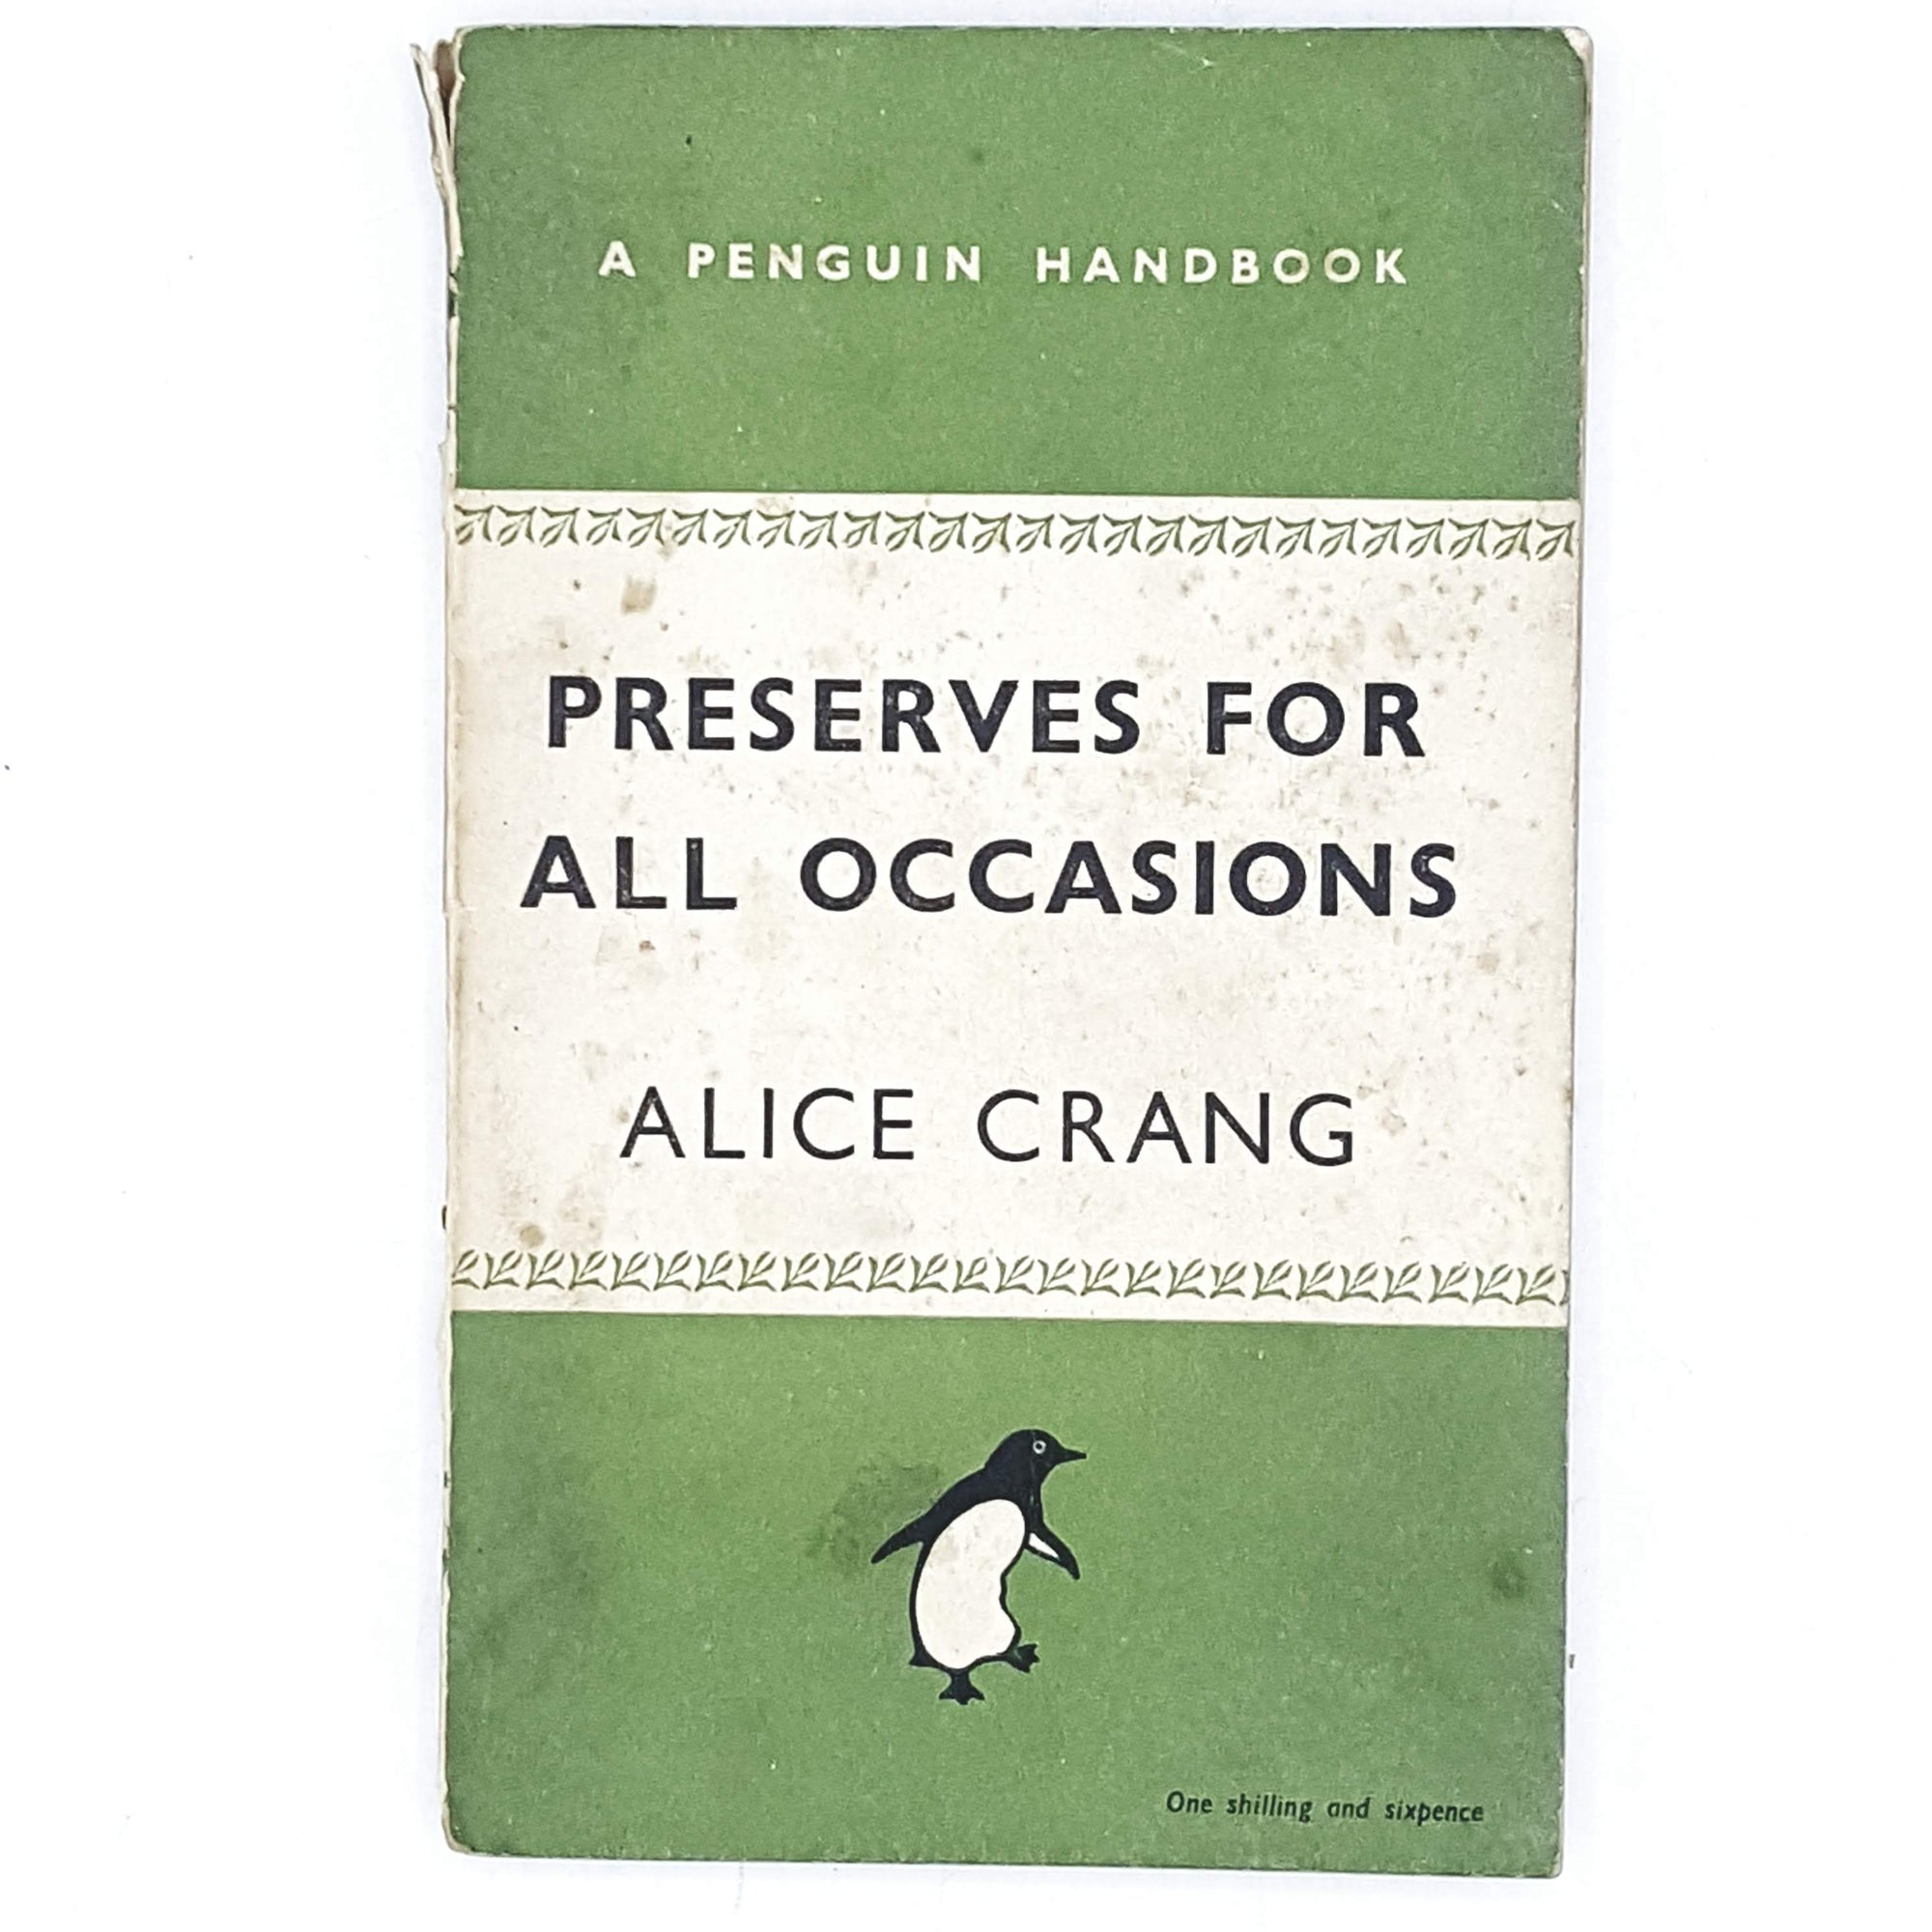 Vintage Penguin Handbook: Preserves For All Occassions by Alice Crang 1948